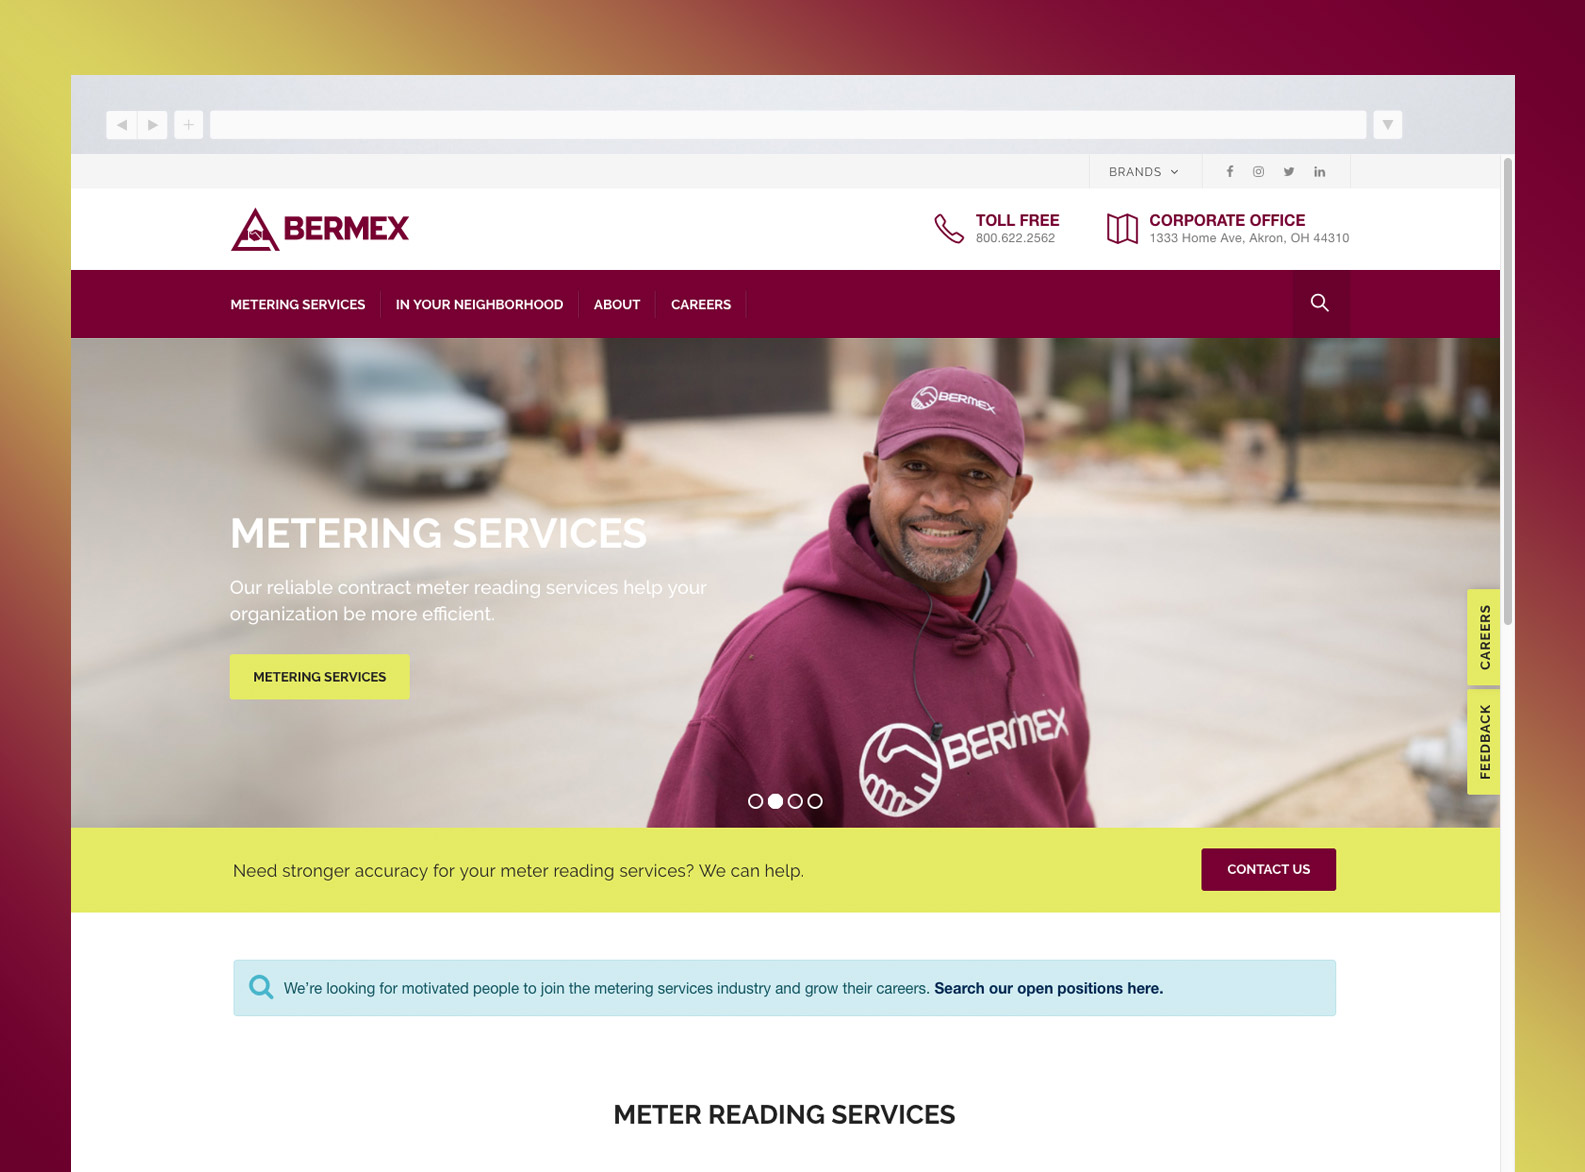 Bermex Home page